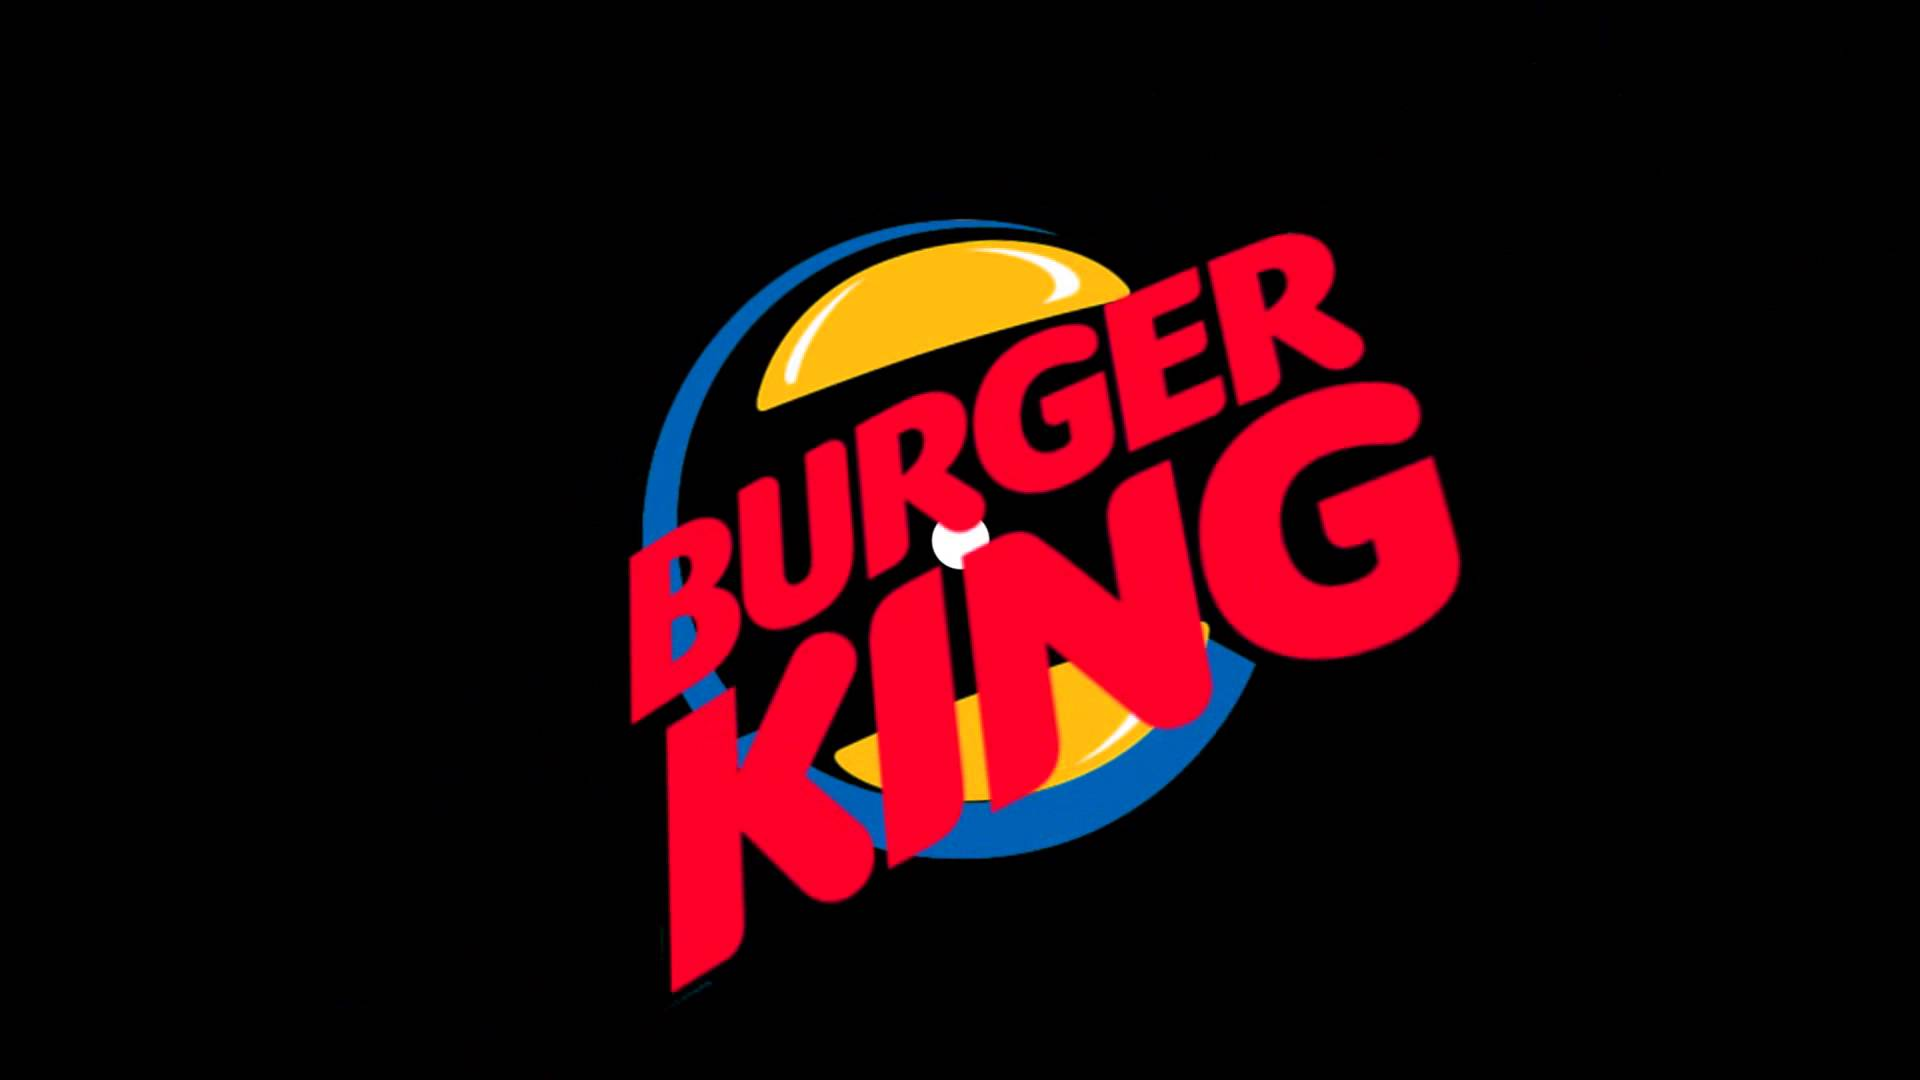 Burger King Logo - Burger King Logo】| Burger King Logo PNG Vector Free Download